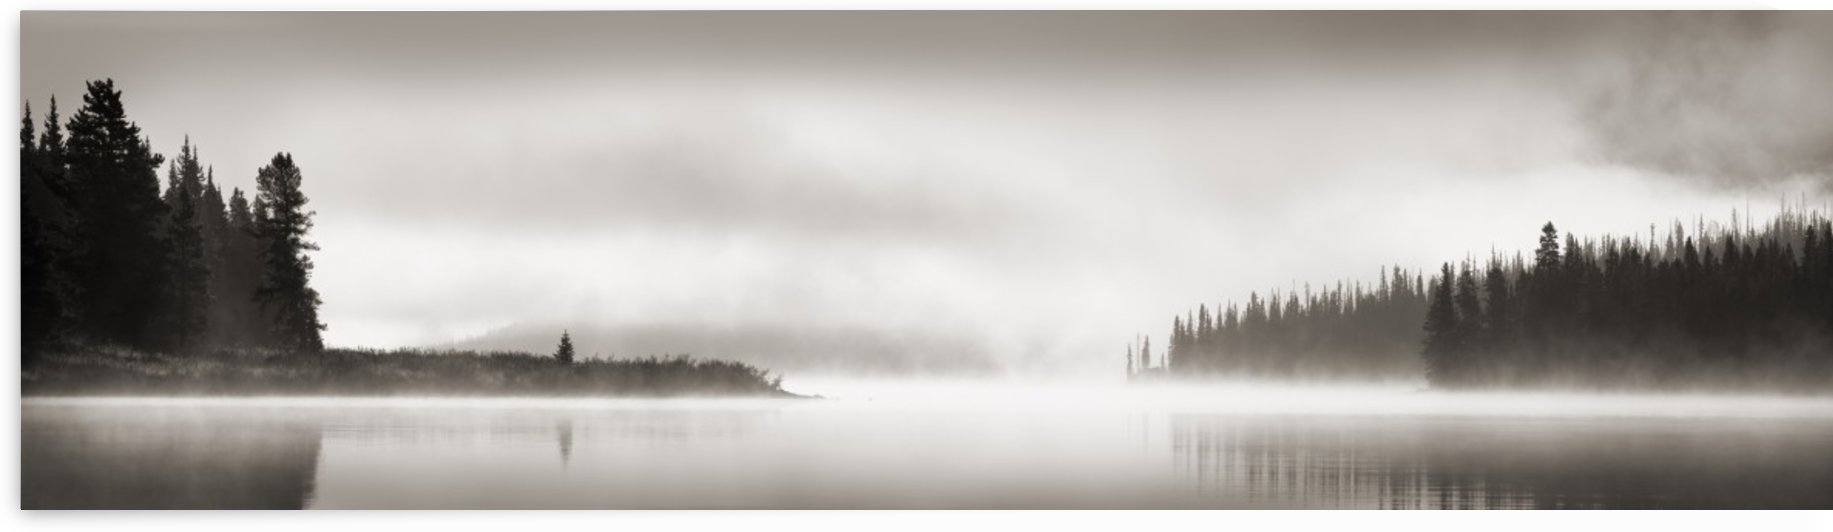 Foggy Scene by PacificStock